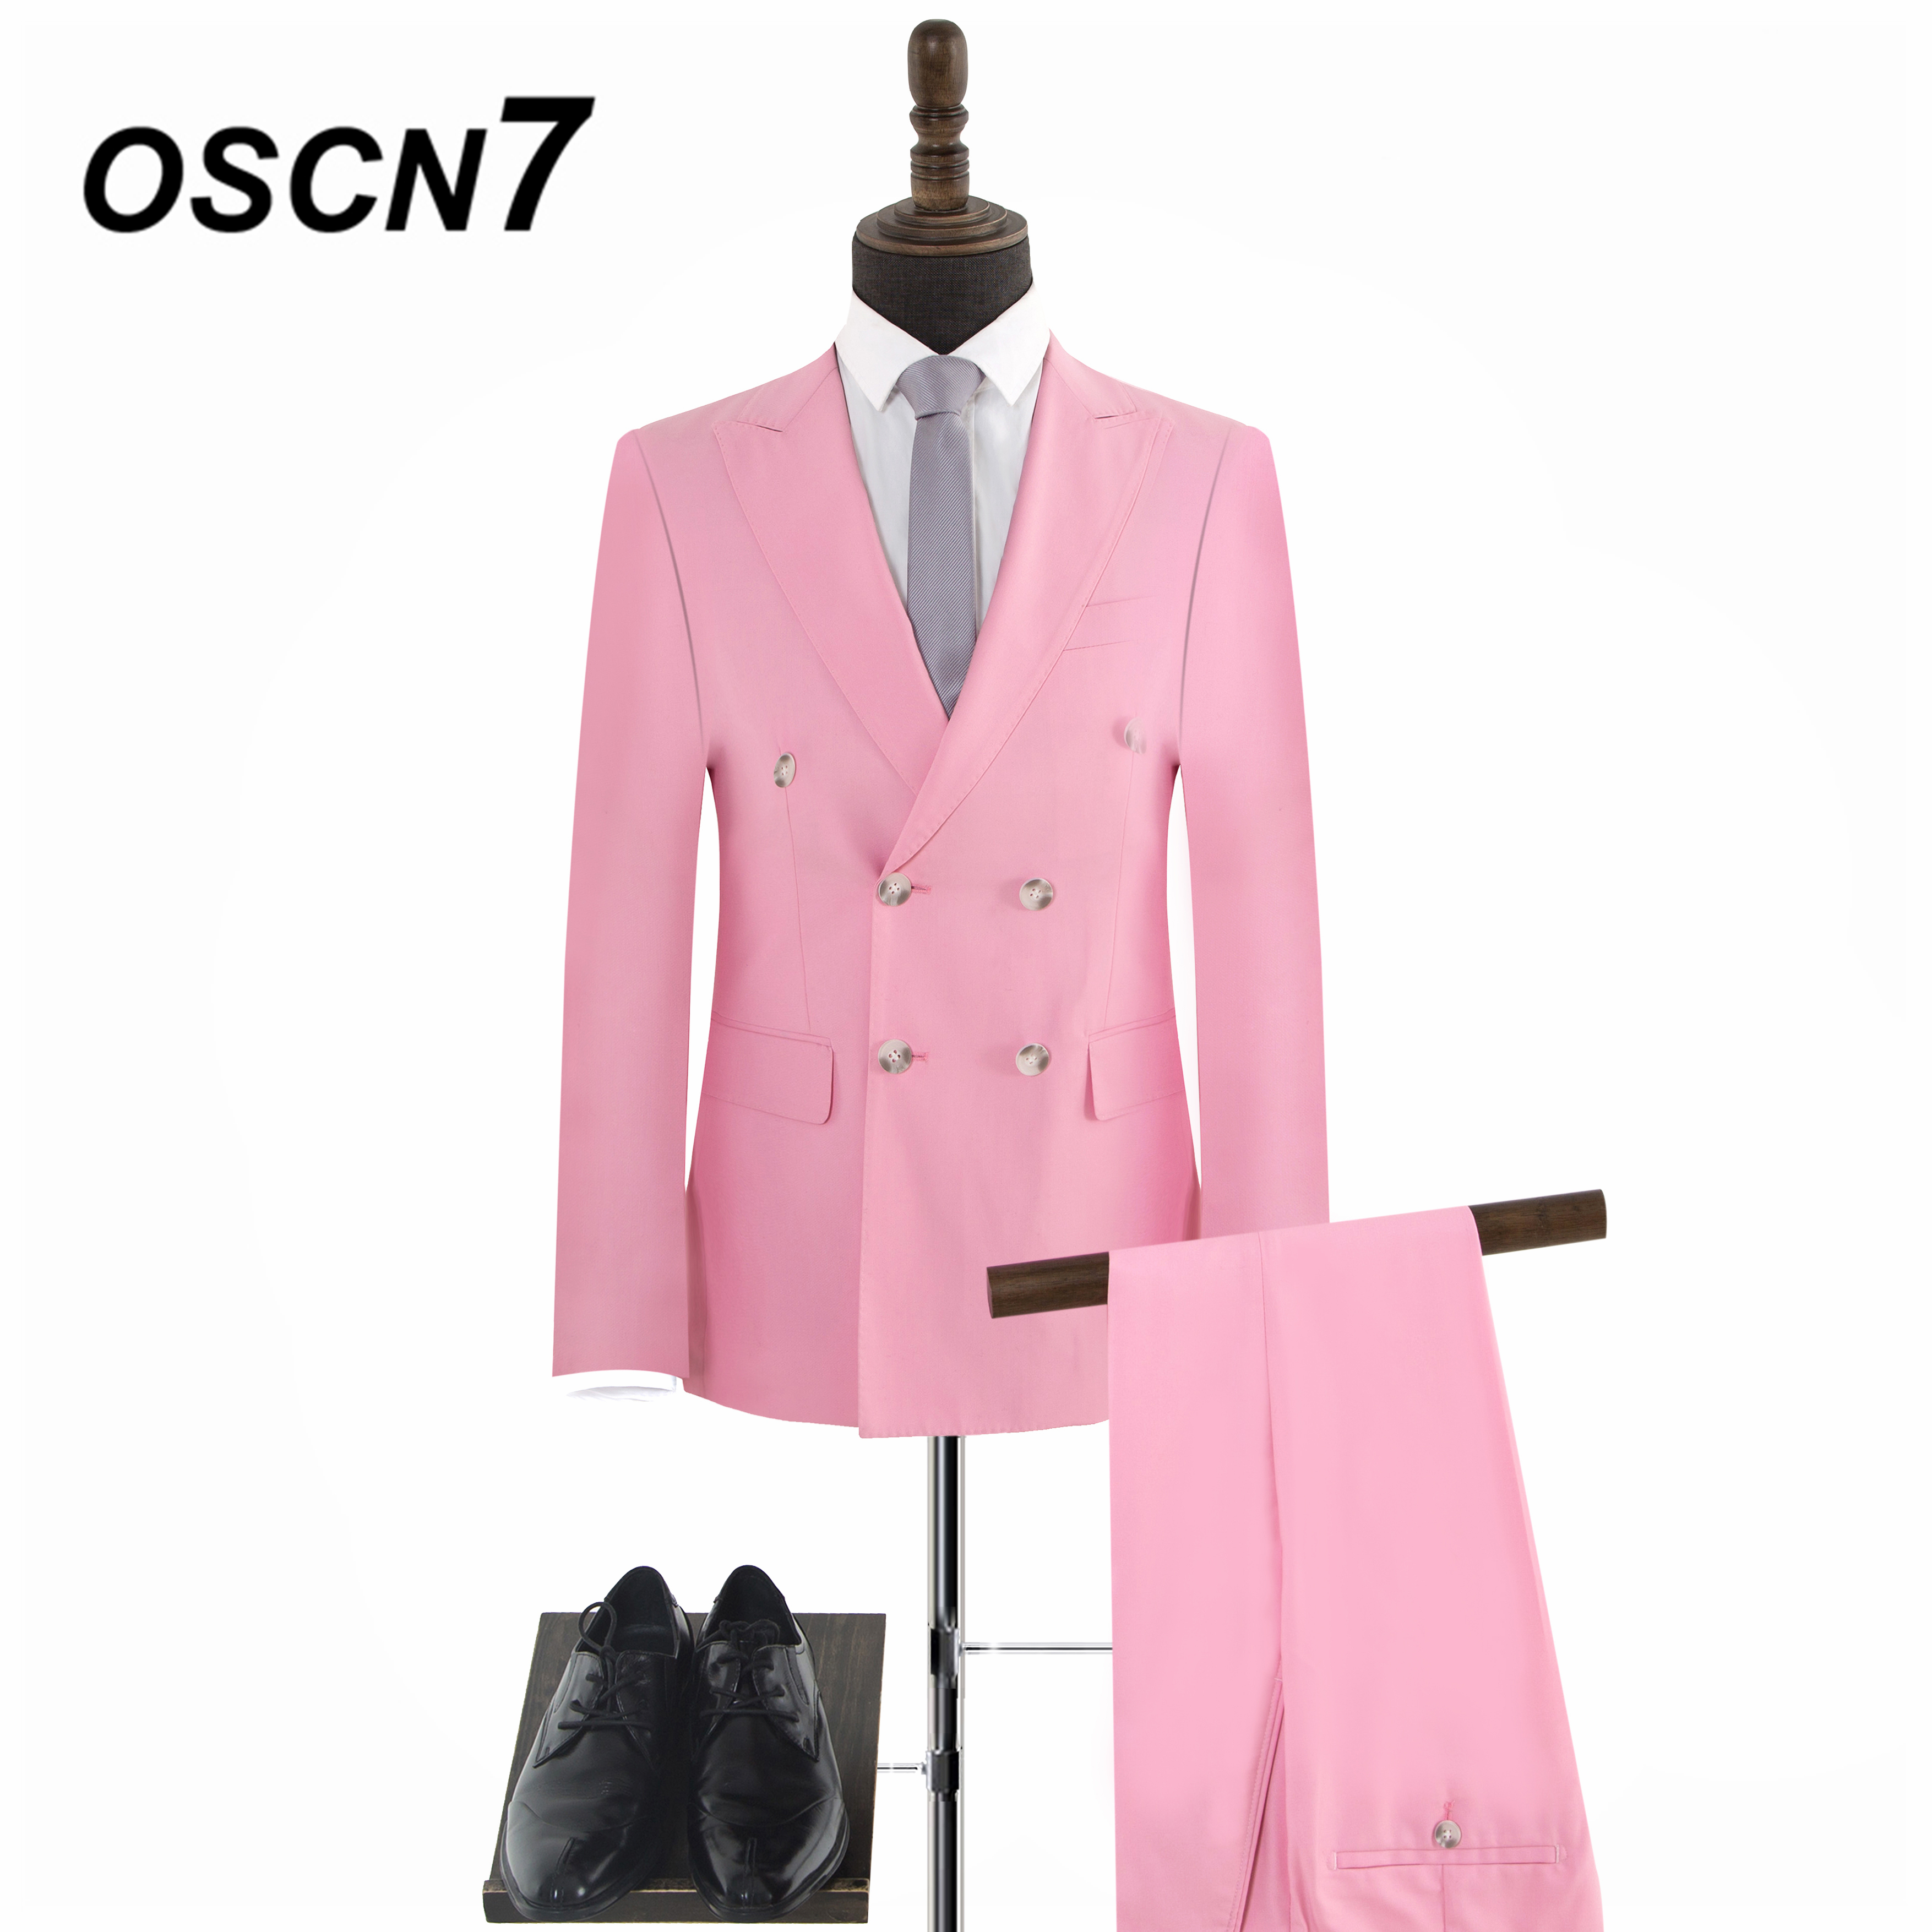 OSCN7 Pink Peak Lapels Double-breasted Tailor Made Suits